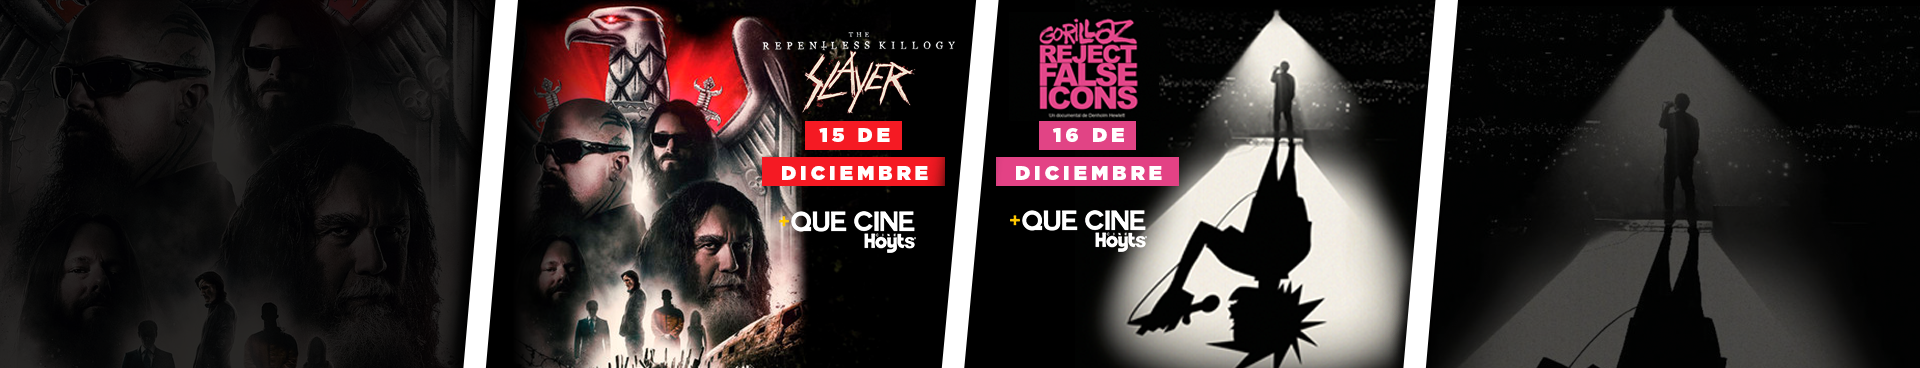 +QUE CINE SLAYER: THE REPLENTLESS KILLOGY, 15 DE DICIEMBRE + GORILLAZ: REJECT FALSE ICONS 16 DE DICIEMBRE